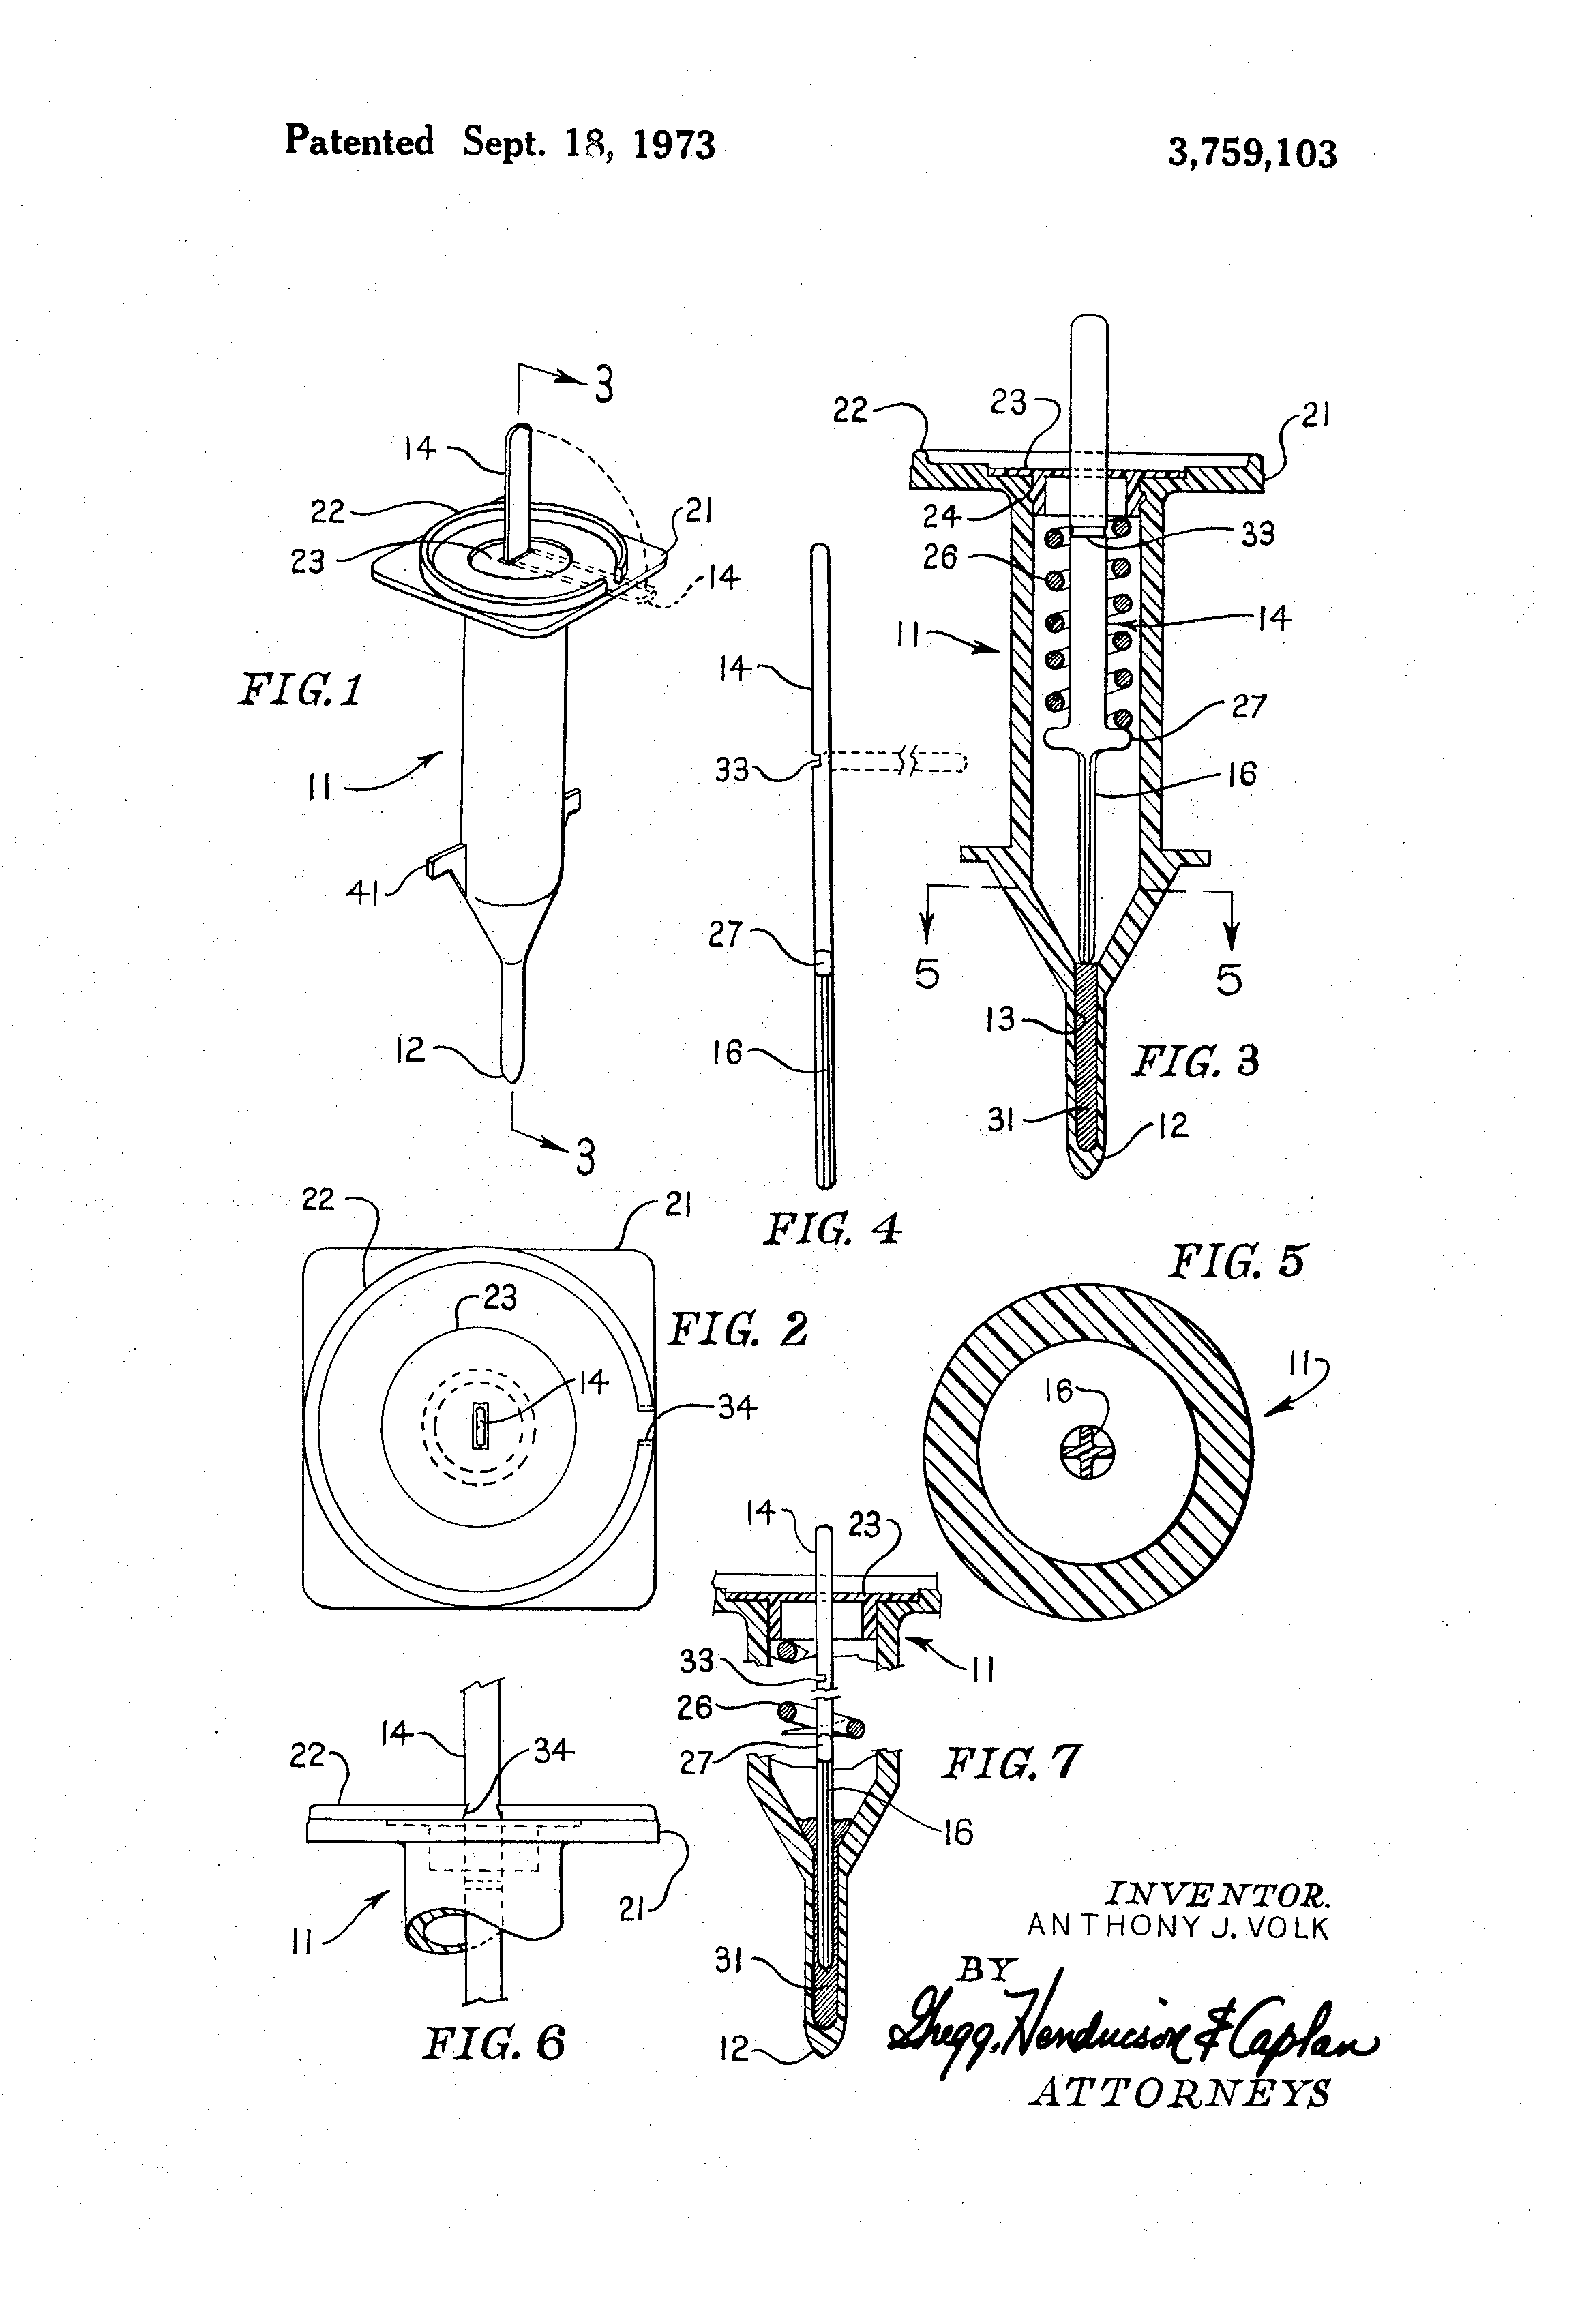 Patent drawing for Volk's first Disposable Cooking Thermometer, the Vue-Temp.